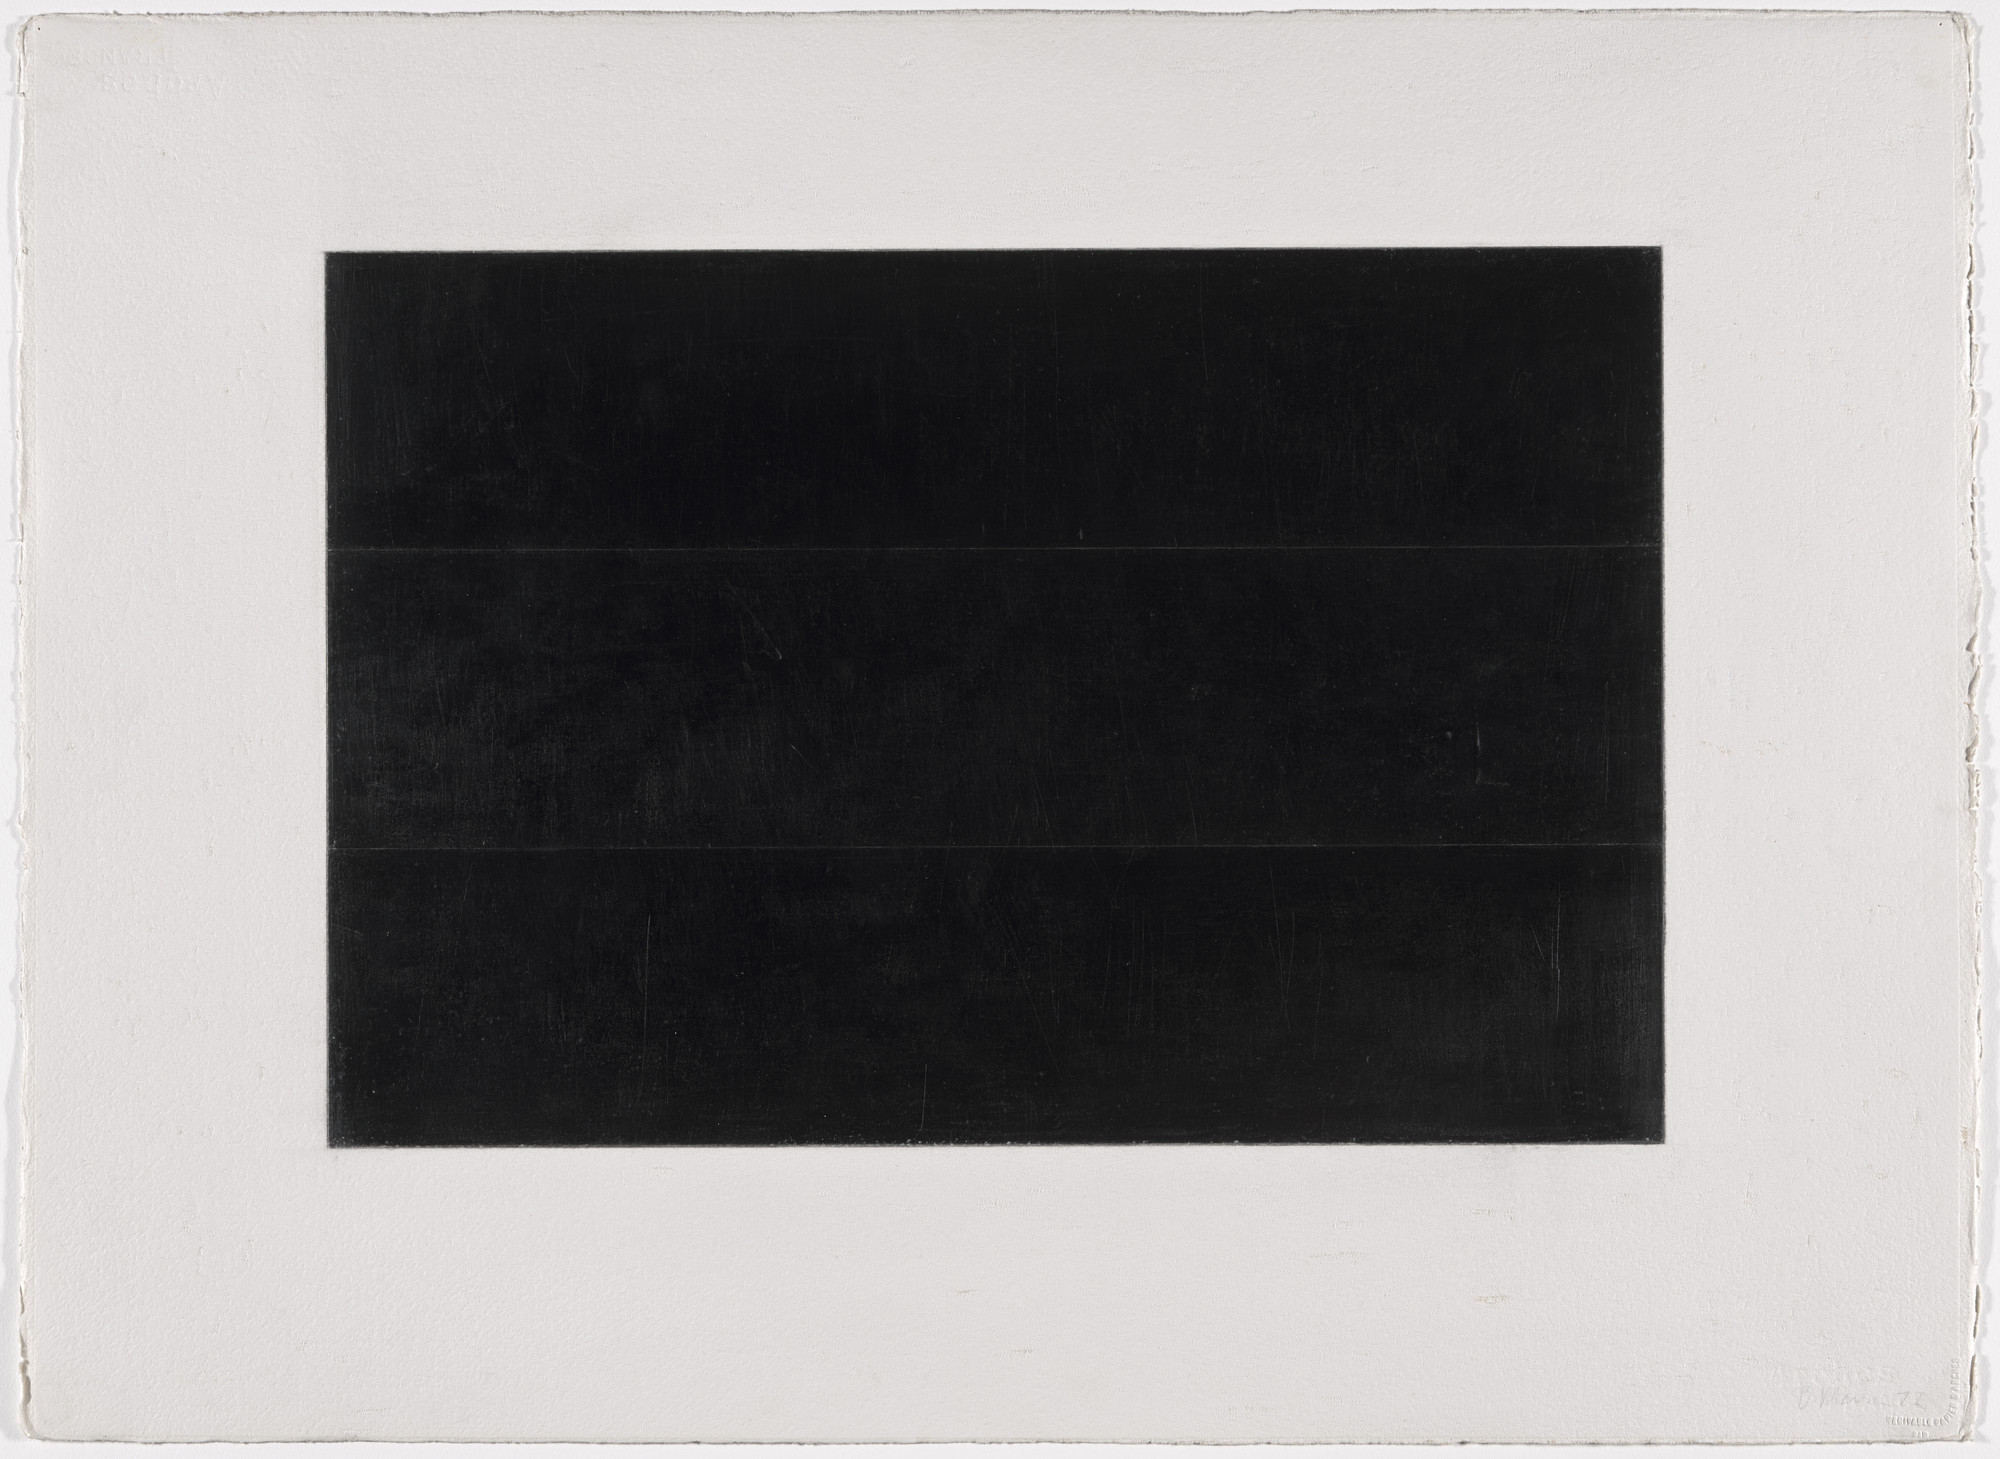 Brice Marden. Grove Group 5. 1972